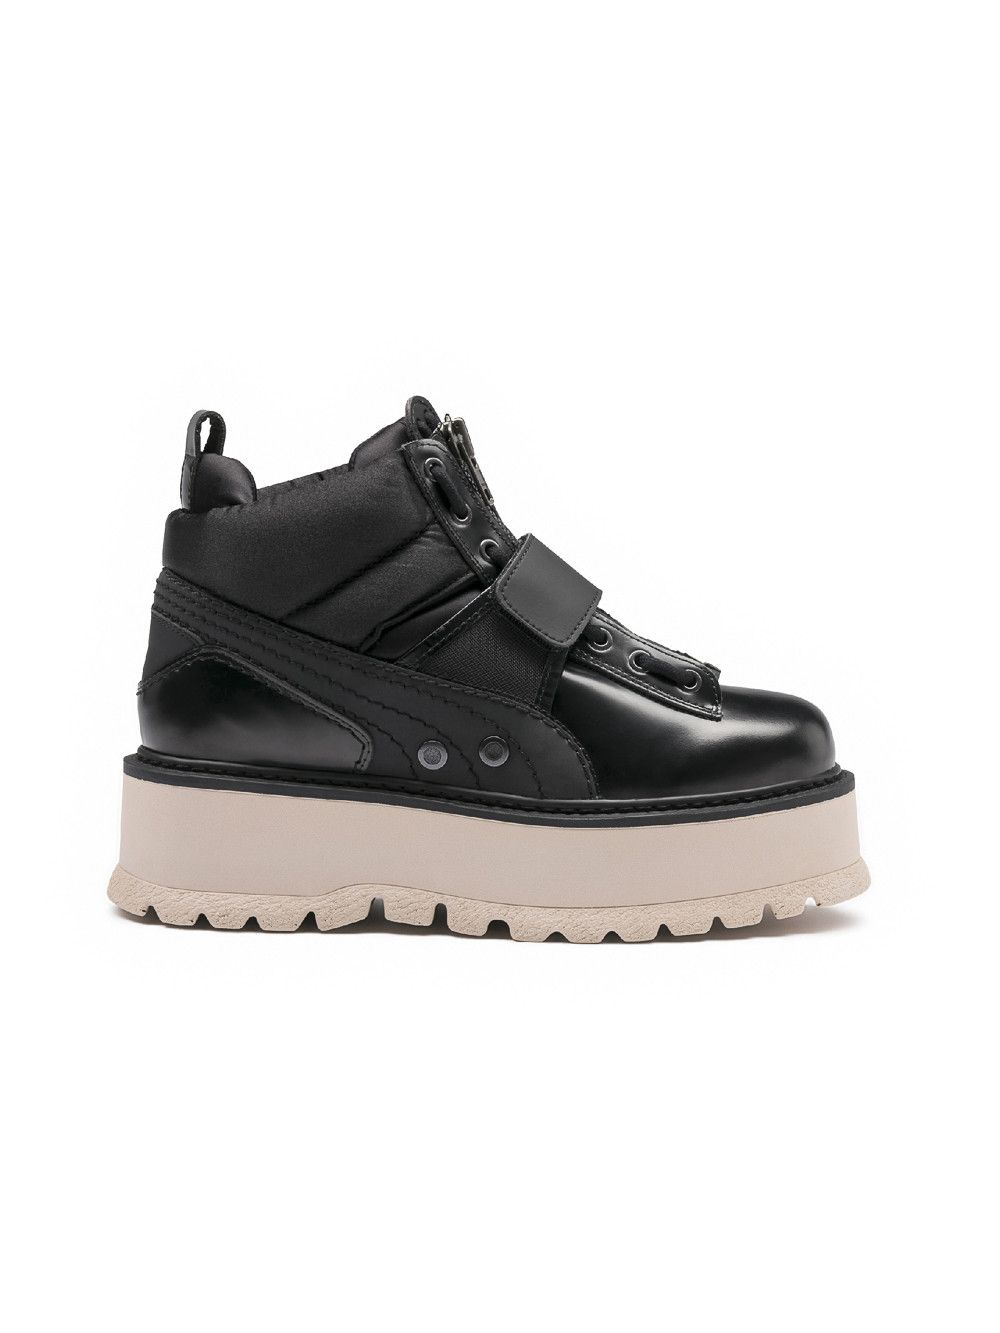 Fenty By Rihanna Leather Strap Sneaker Boots In Black